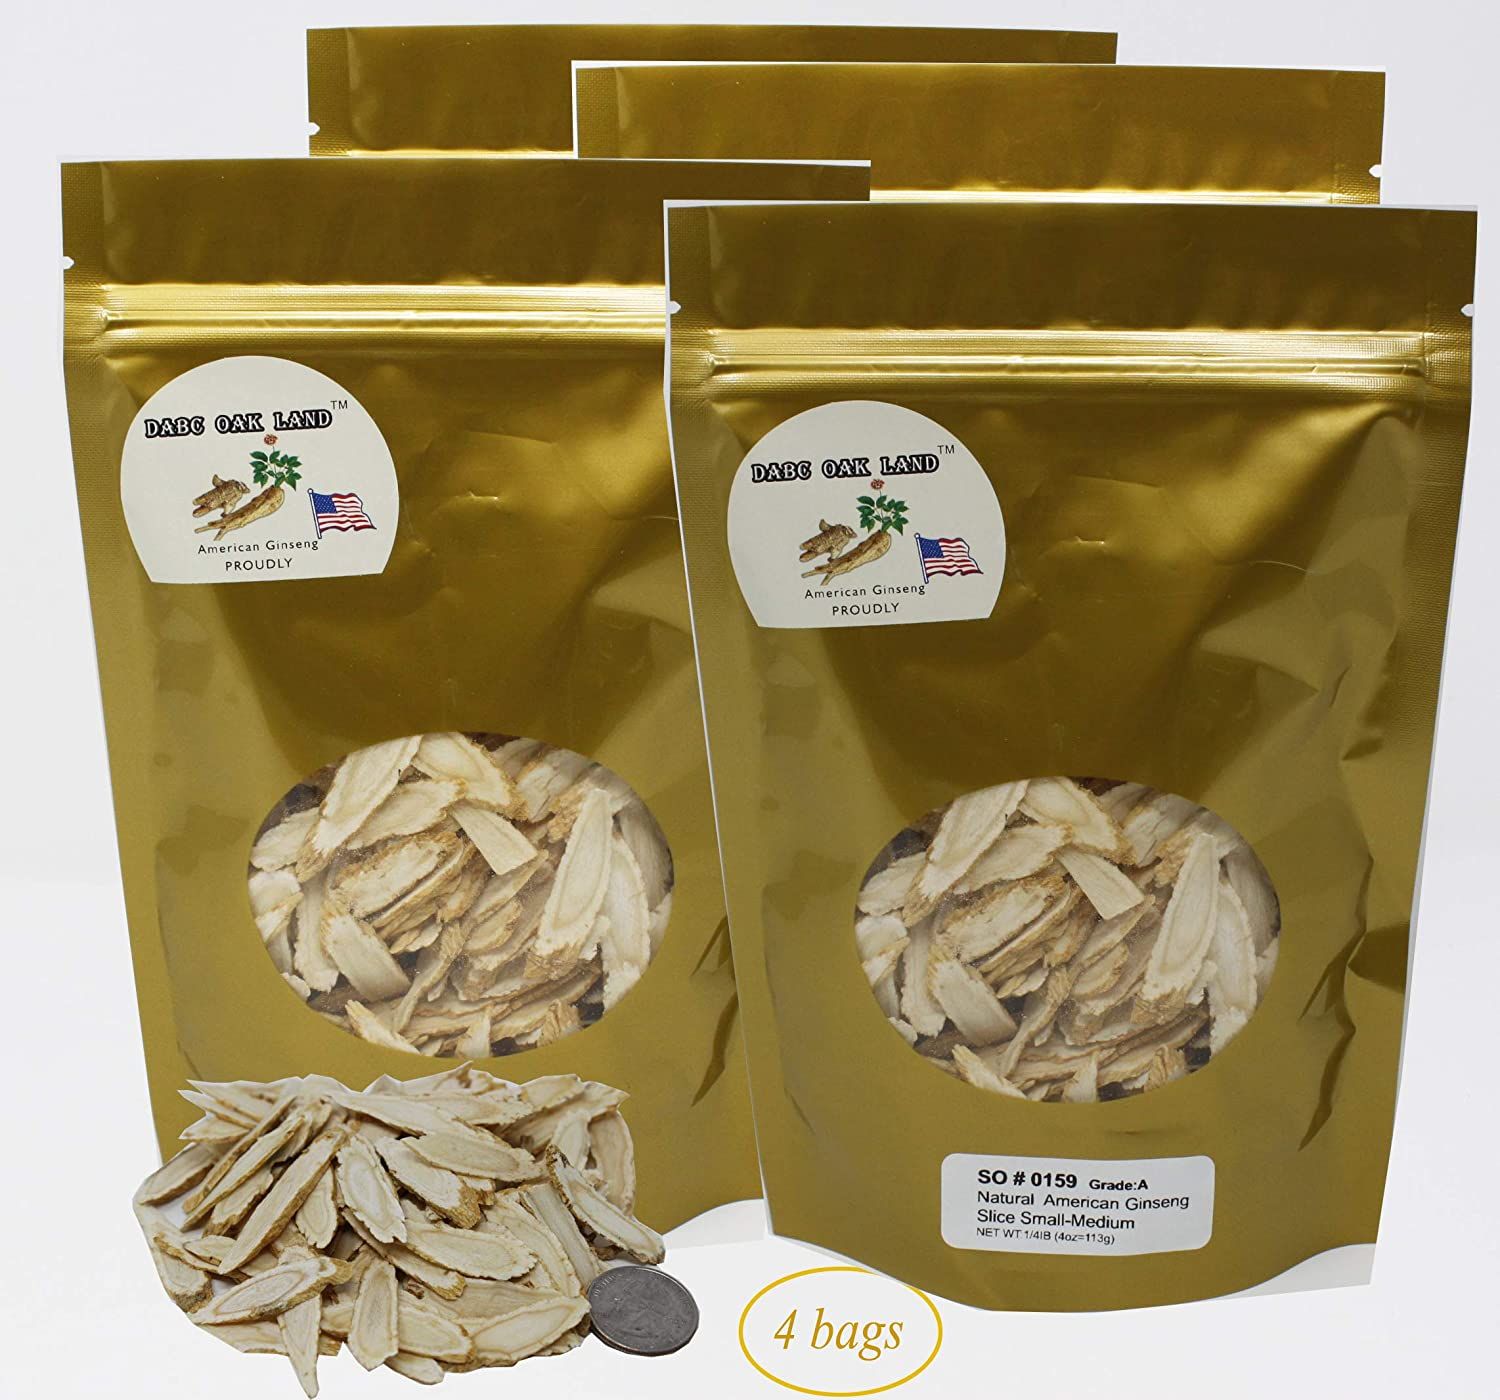 DABC OAK LAND 16OZ 453gm 4 Bags Ginseng Slice,Hand-Selected AAA Grade Ginseng Root Slices Sliced Ginseng Root SO 0159 Bag